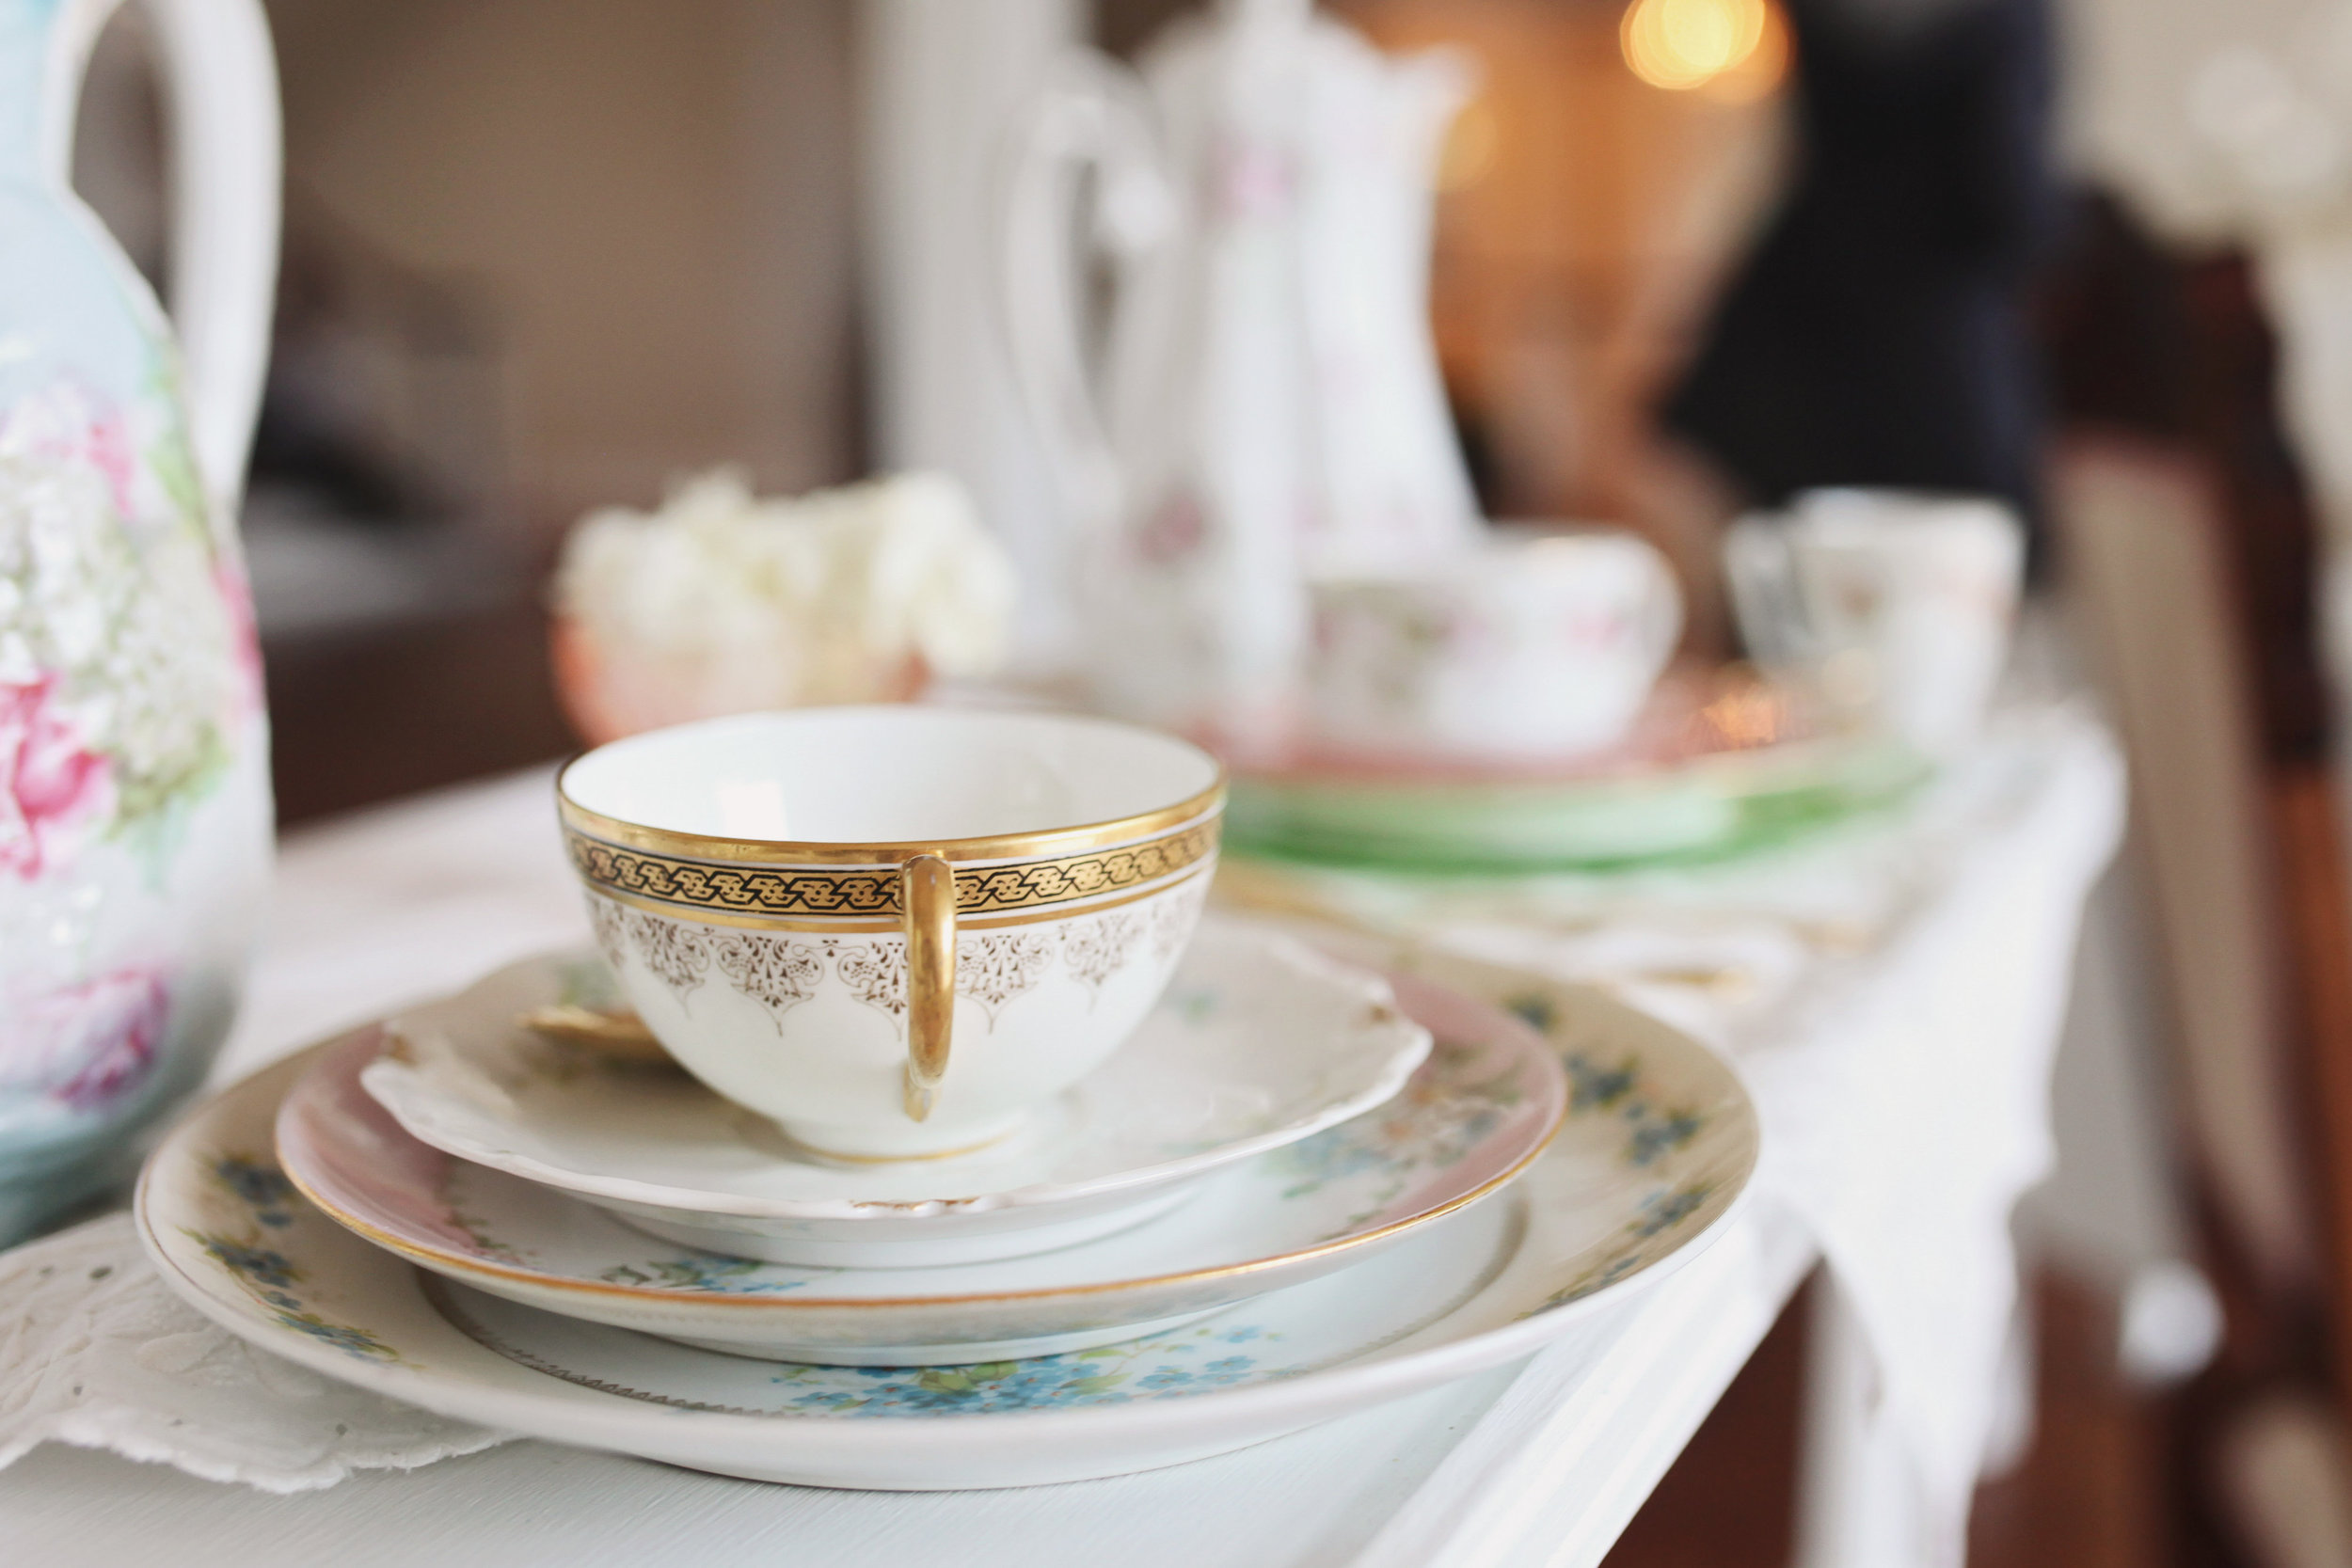 Mismatched Tea cups and plates